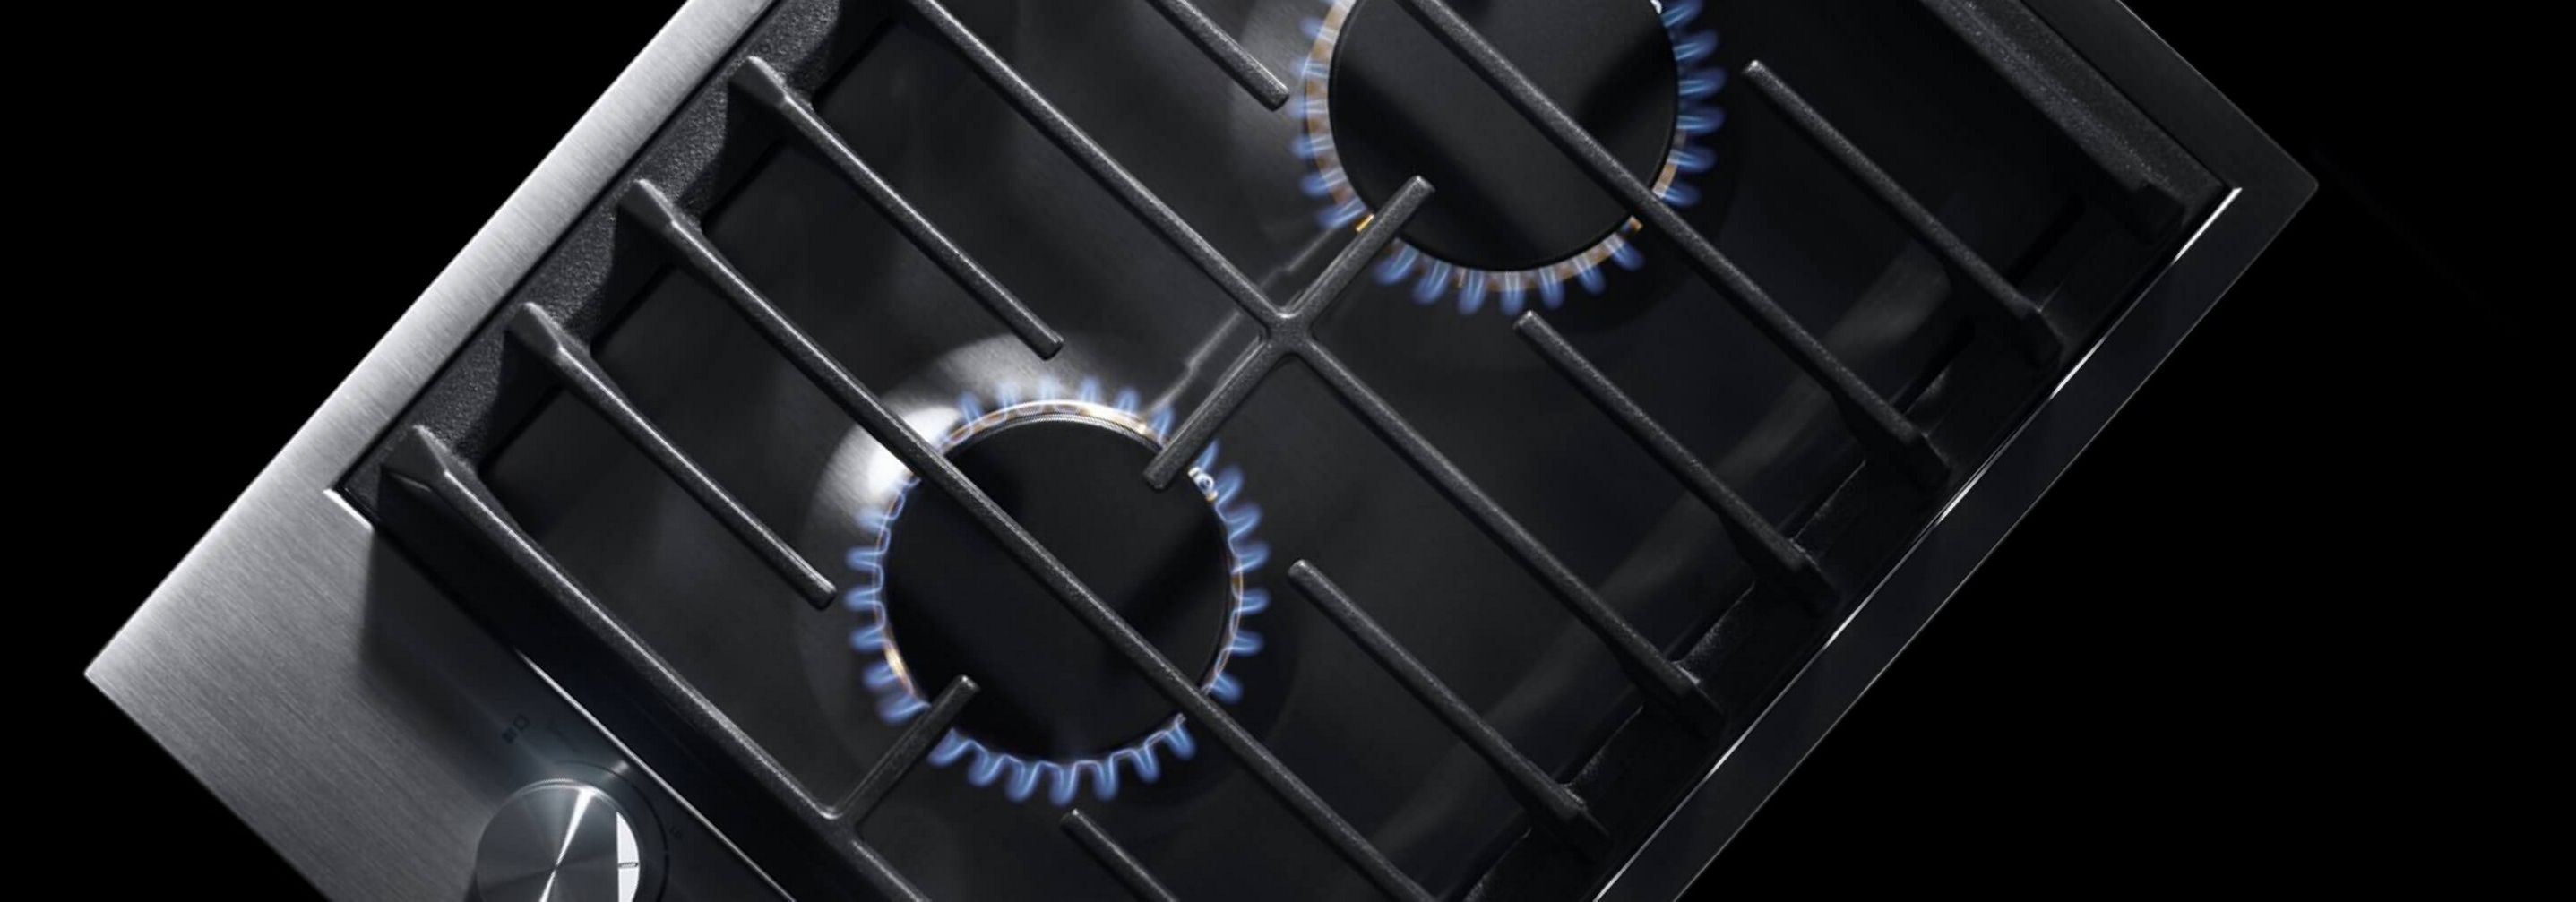 The 2-burner gas cooktop, with its burners lit.